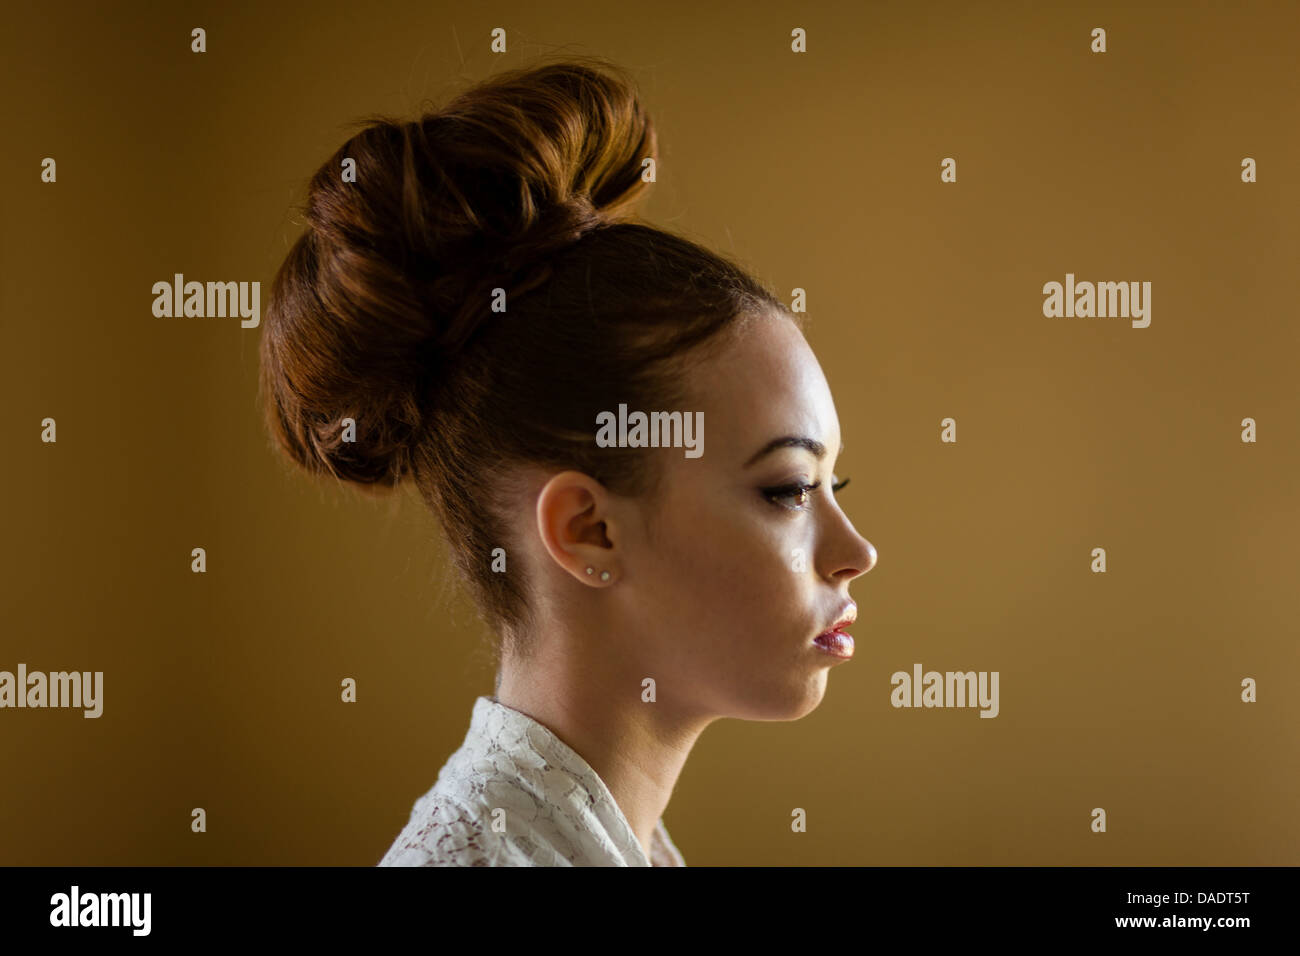 Close up portrait of a young woman with her hair in a bun - Stock Image